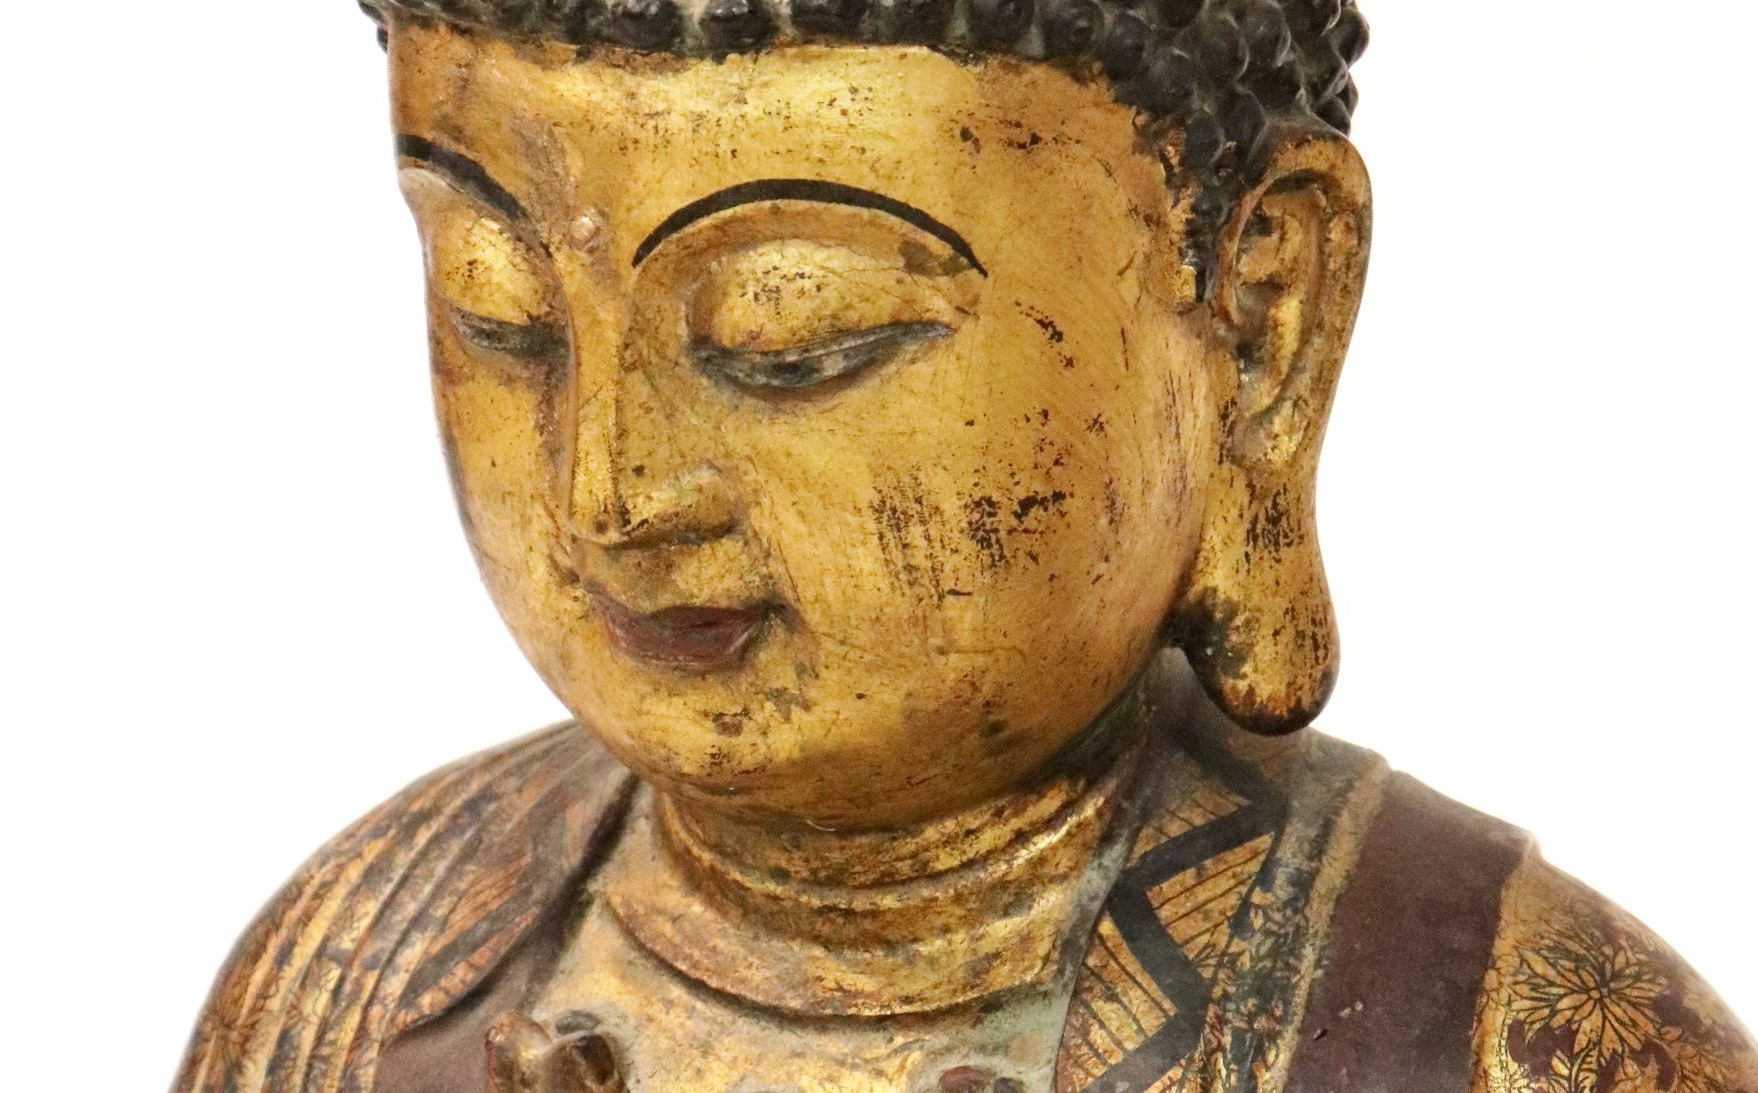 February 22, 2020 – The Winter Antiques Sale | Day 1